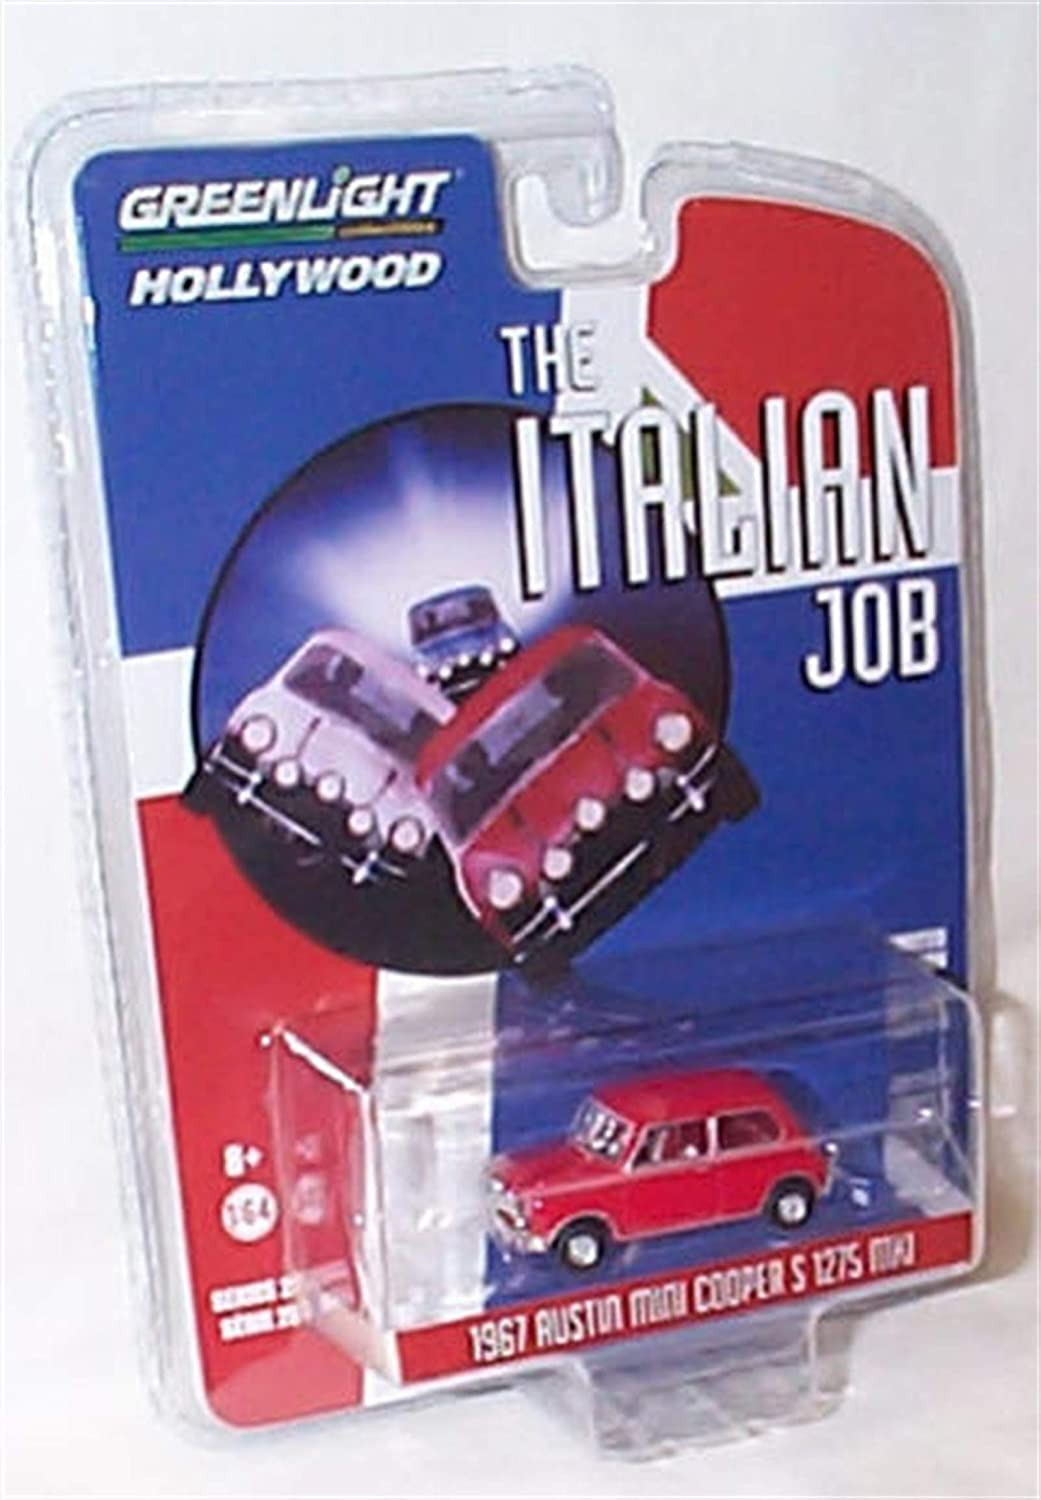 Greenlight Collectables 1967 MINI C00PER S 1275 Mk1 italian Job Red Blue /& White Car set 1:64 scale limited edition diecast model